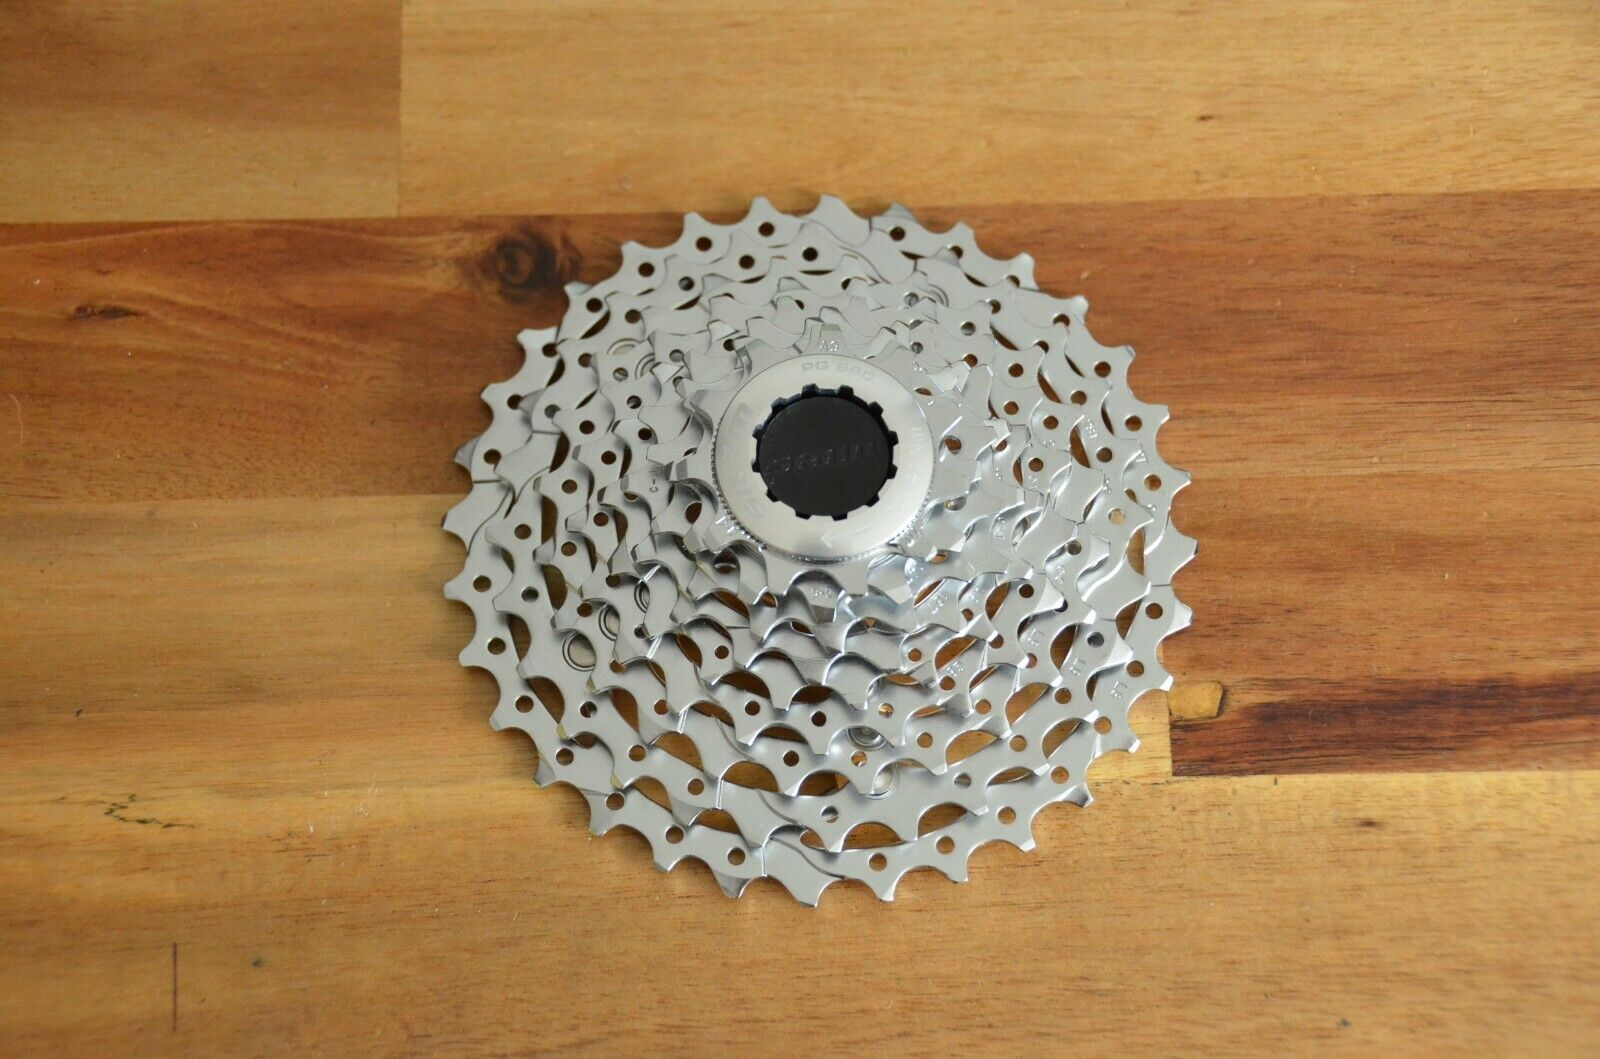 New Rare SRAM PG-990 MTB Cassette 11-32T 9 speed with Gold Spider